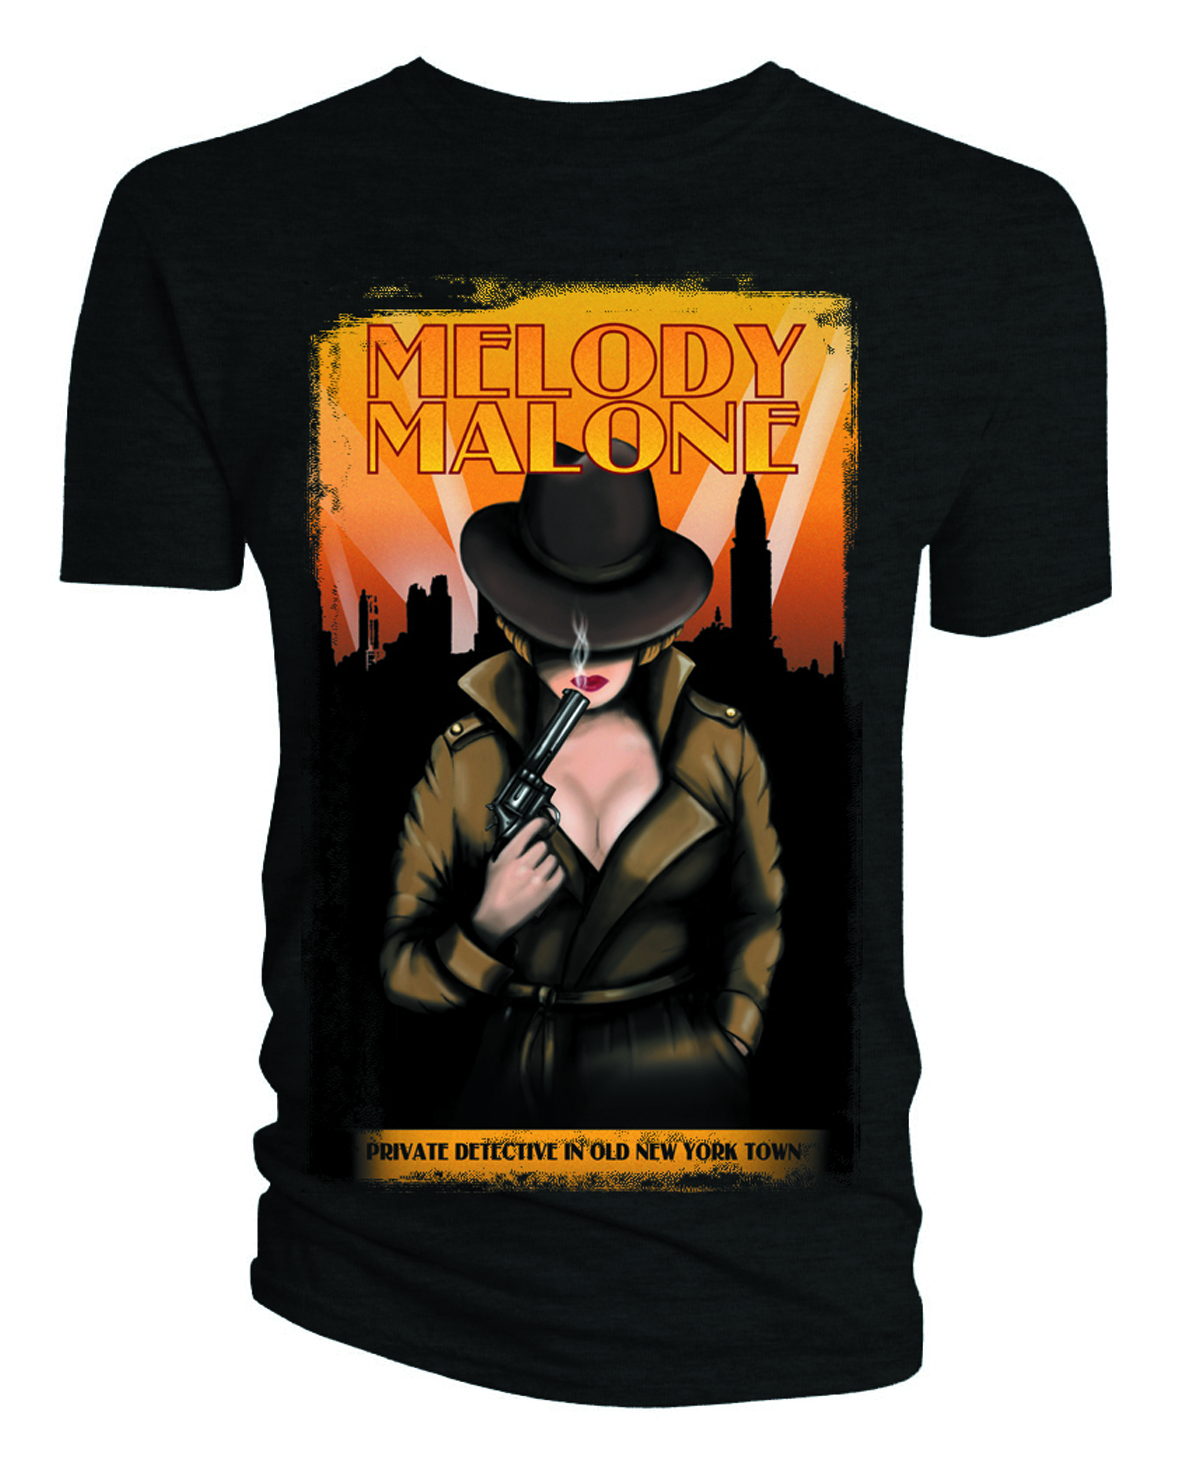 DOCTOR WHO MELODY MALONE BLK T/S MED